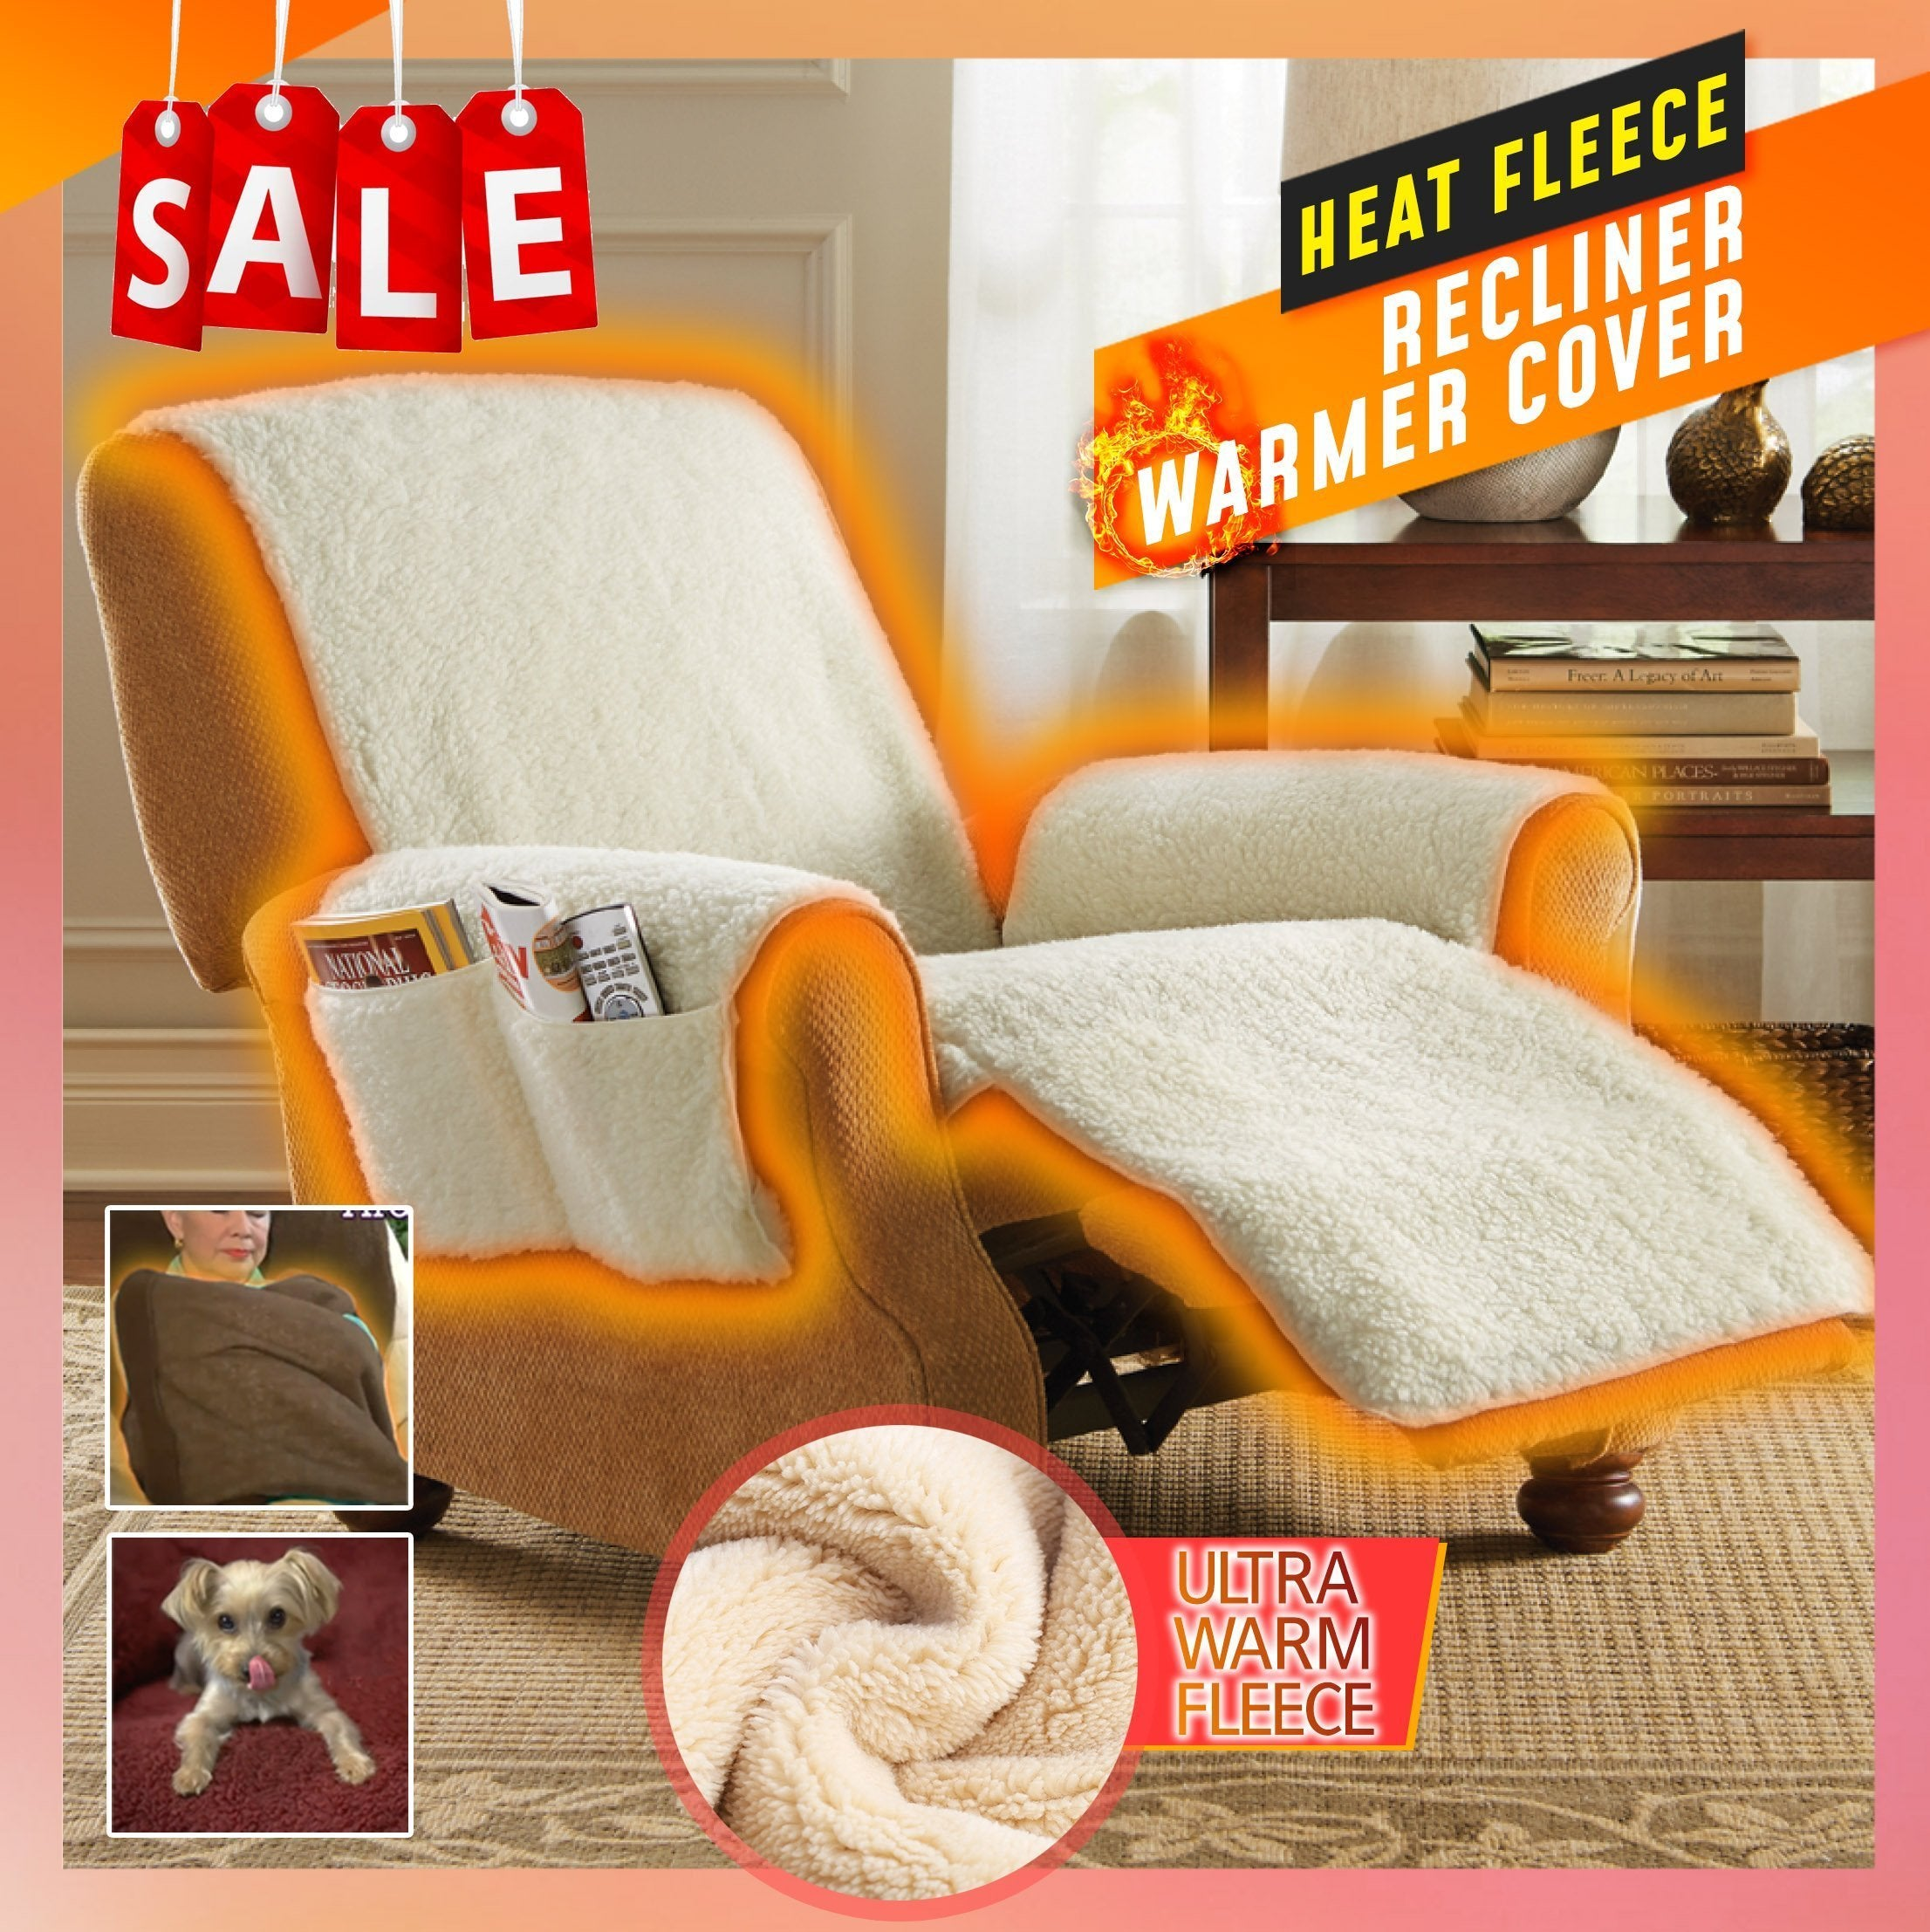 Heat Fleece Recliner Warmer Cover